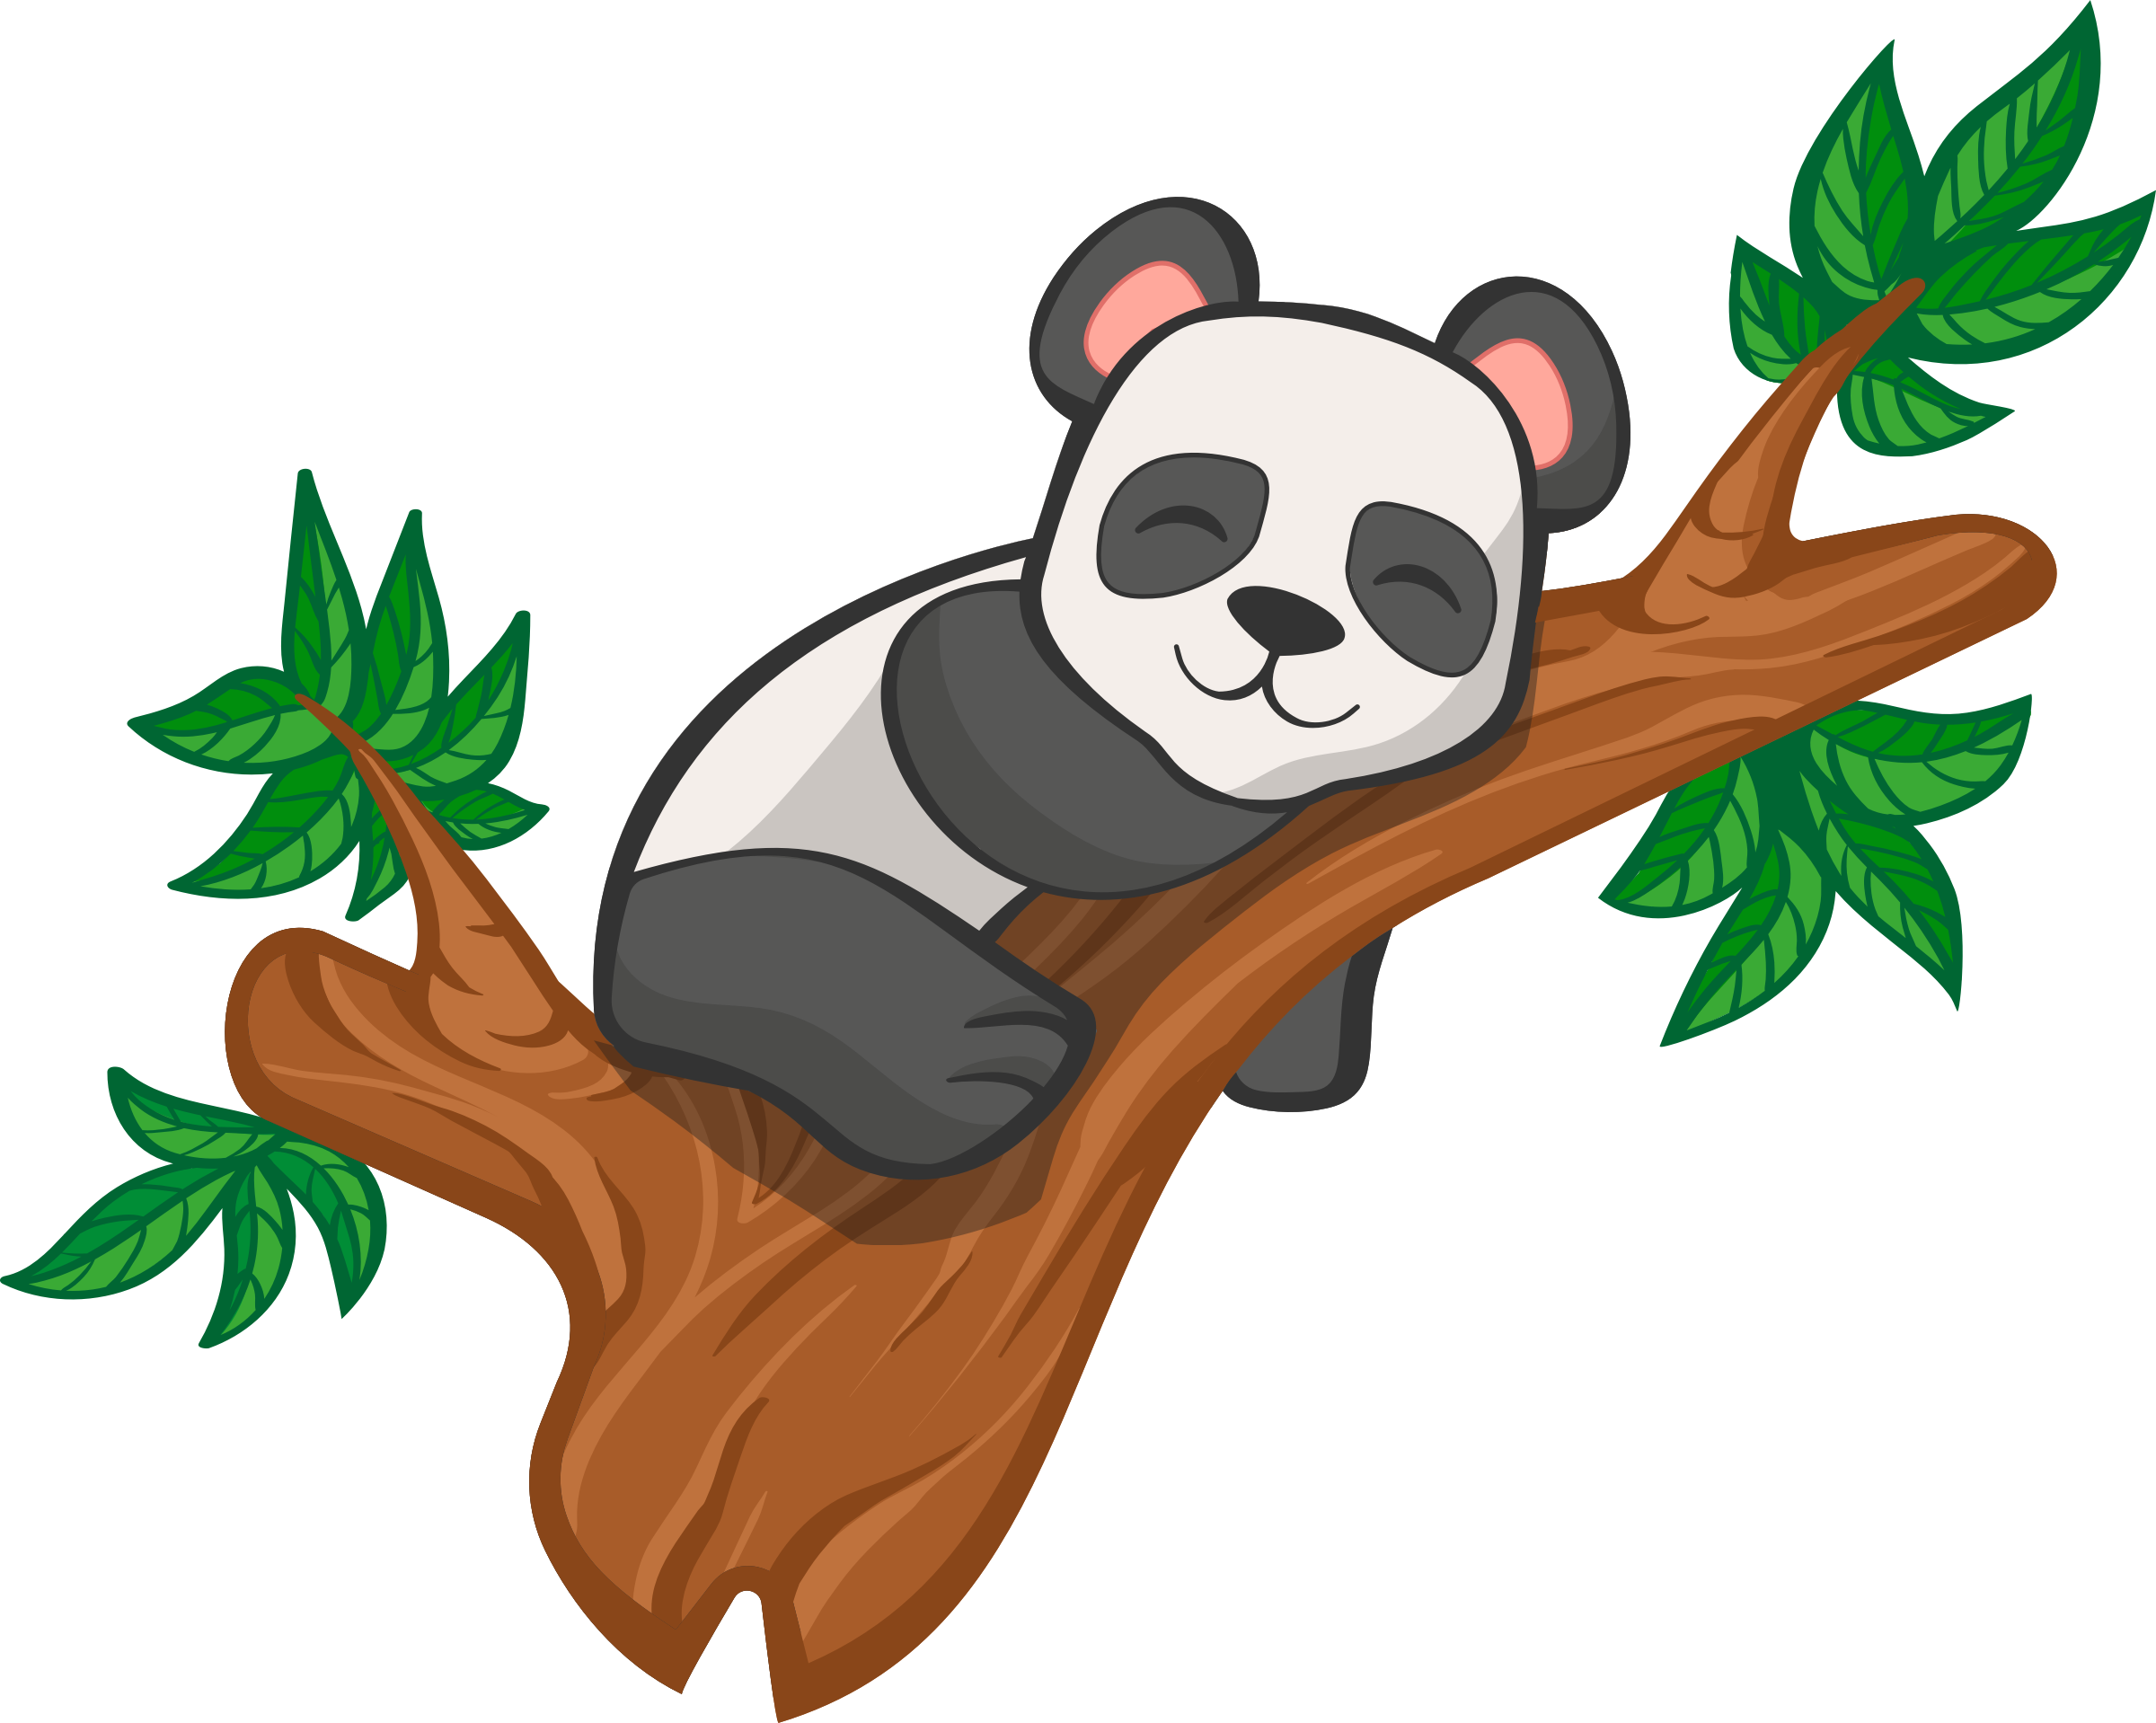 Clipart panda tree banner free download Clipart - Panda in tree banner free download